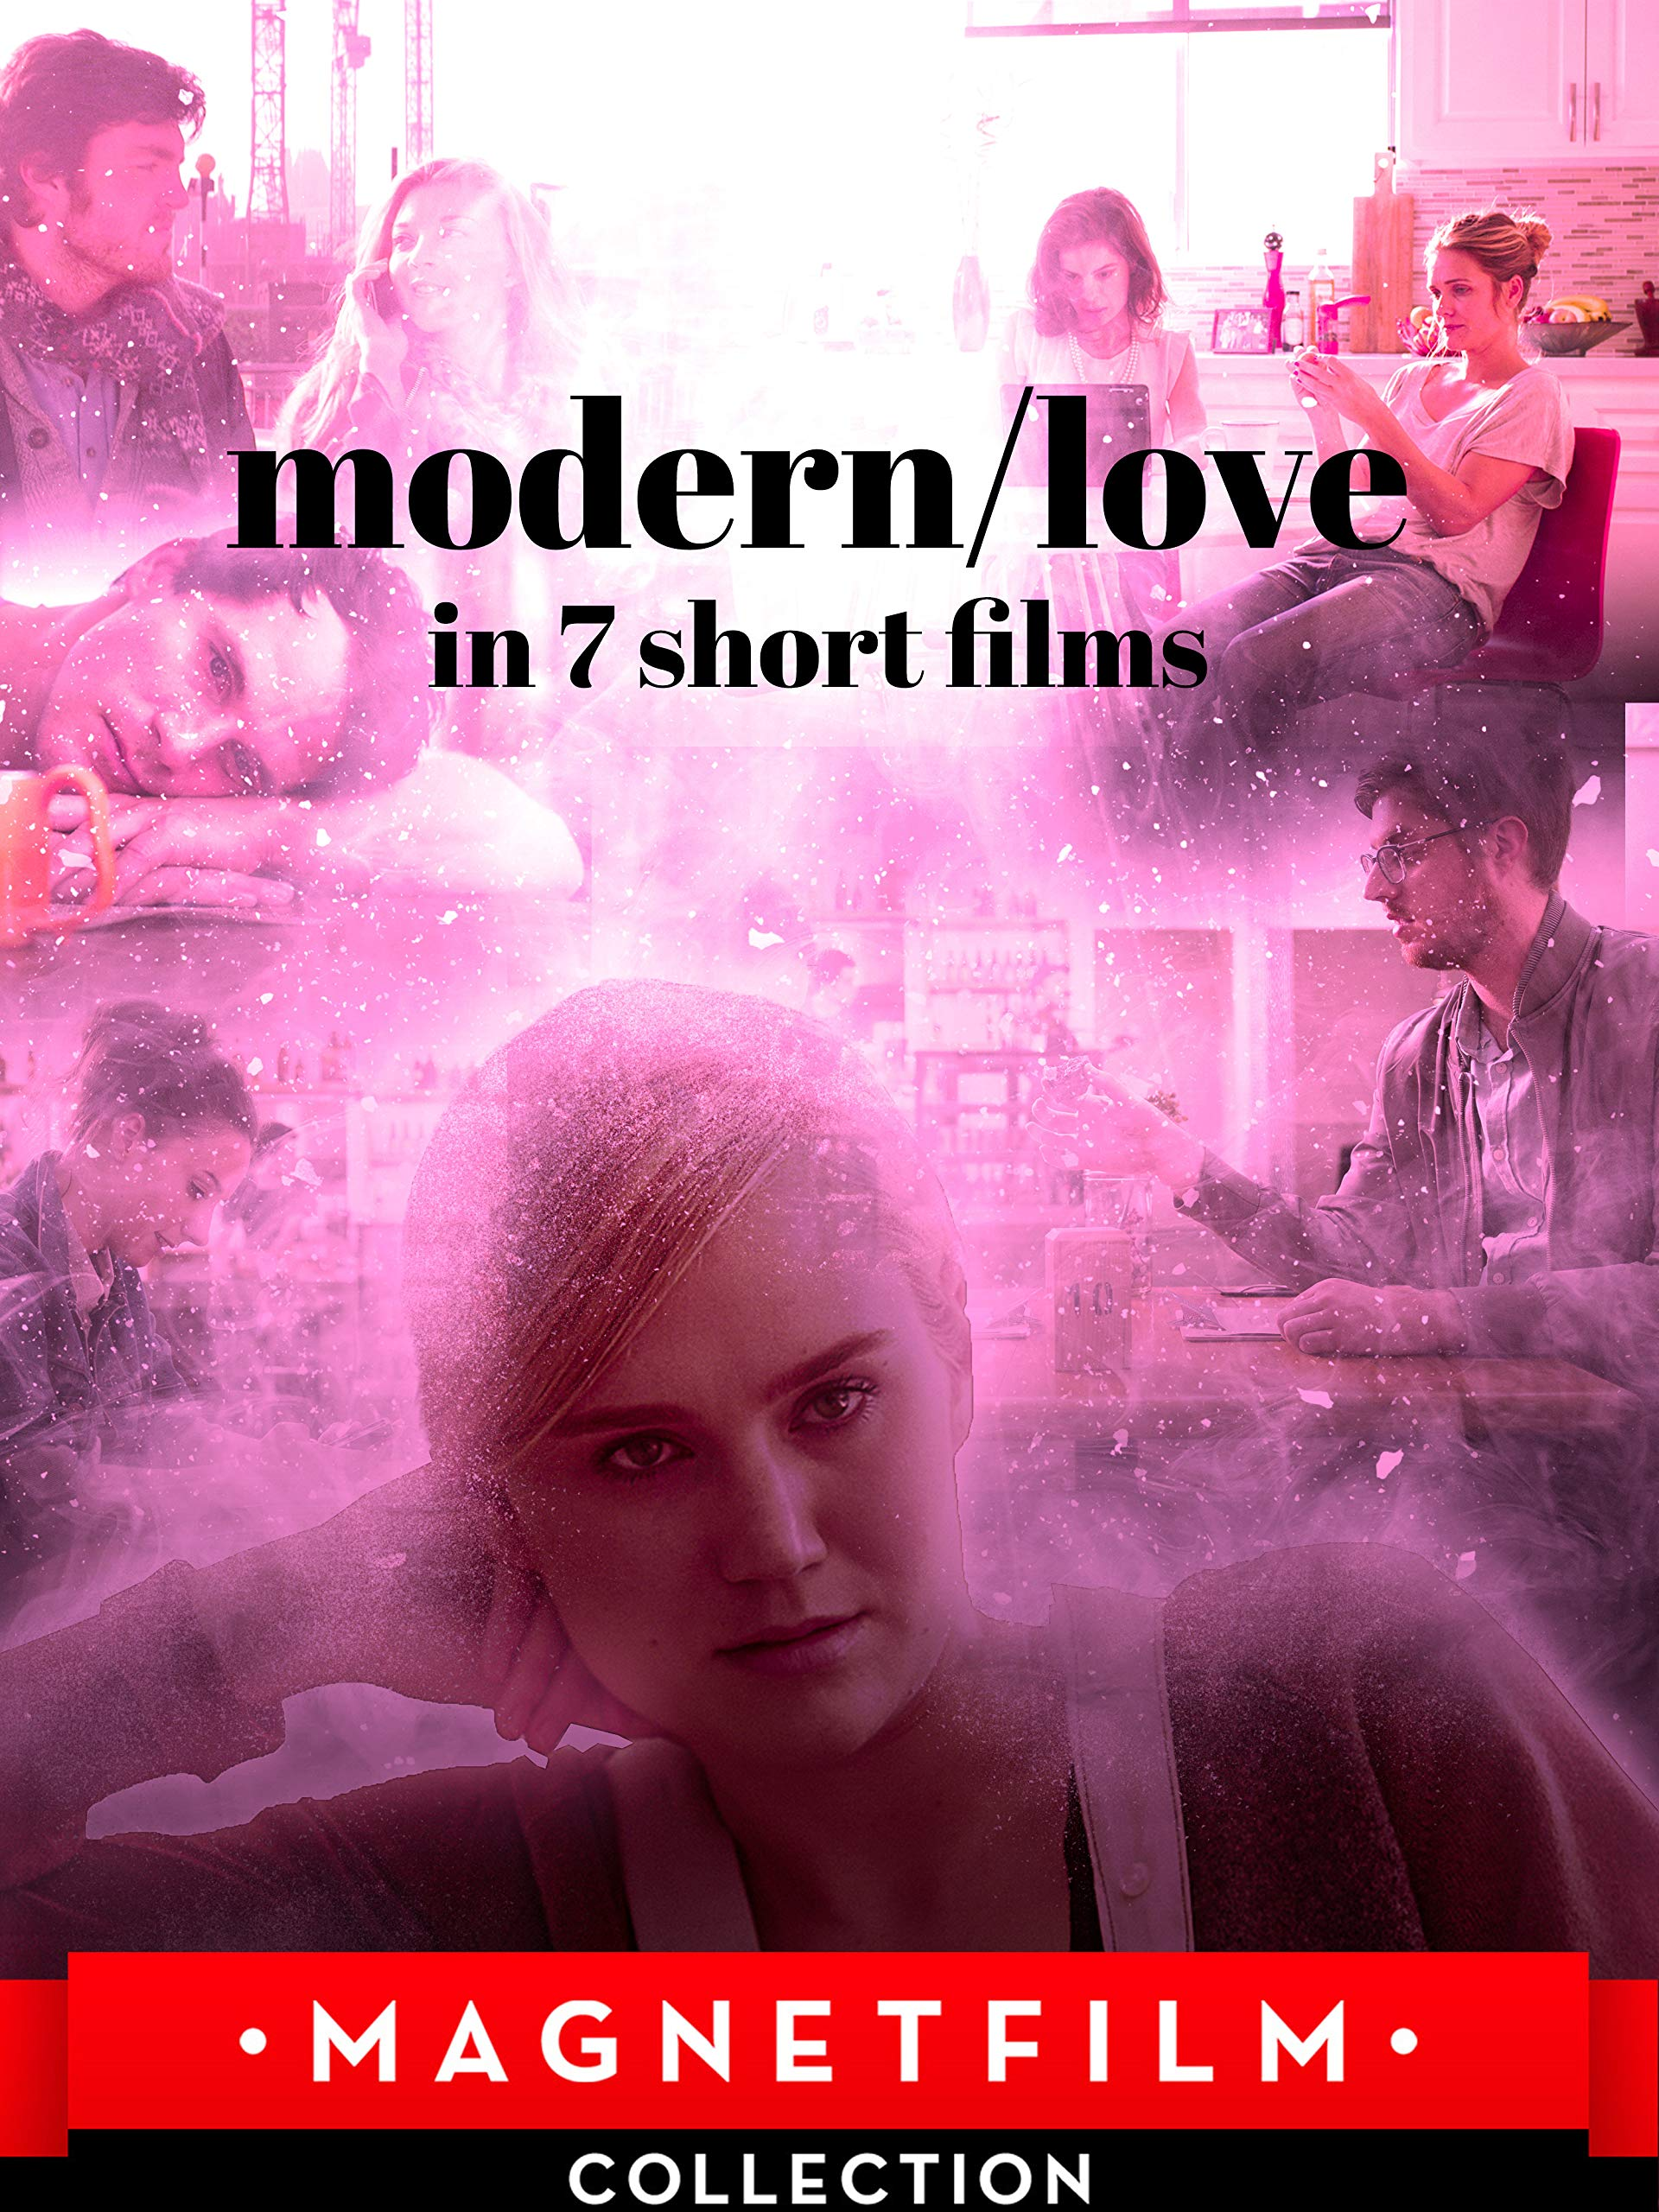 modern/love in 7 short films